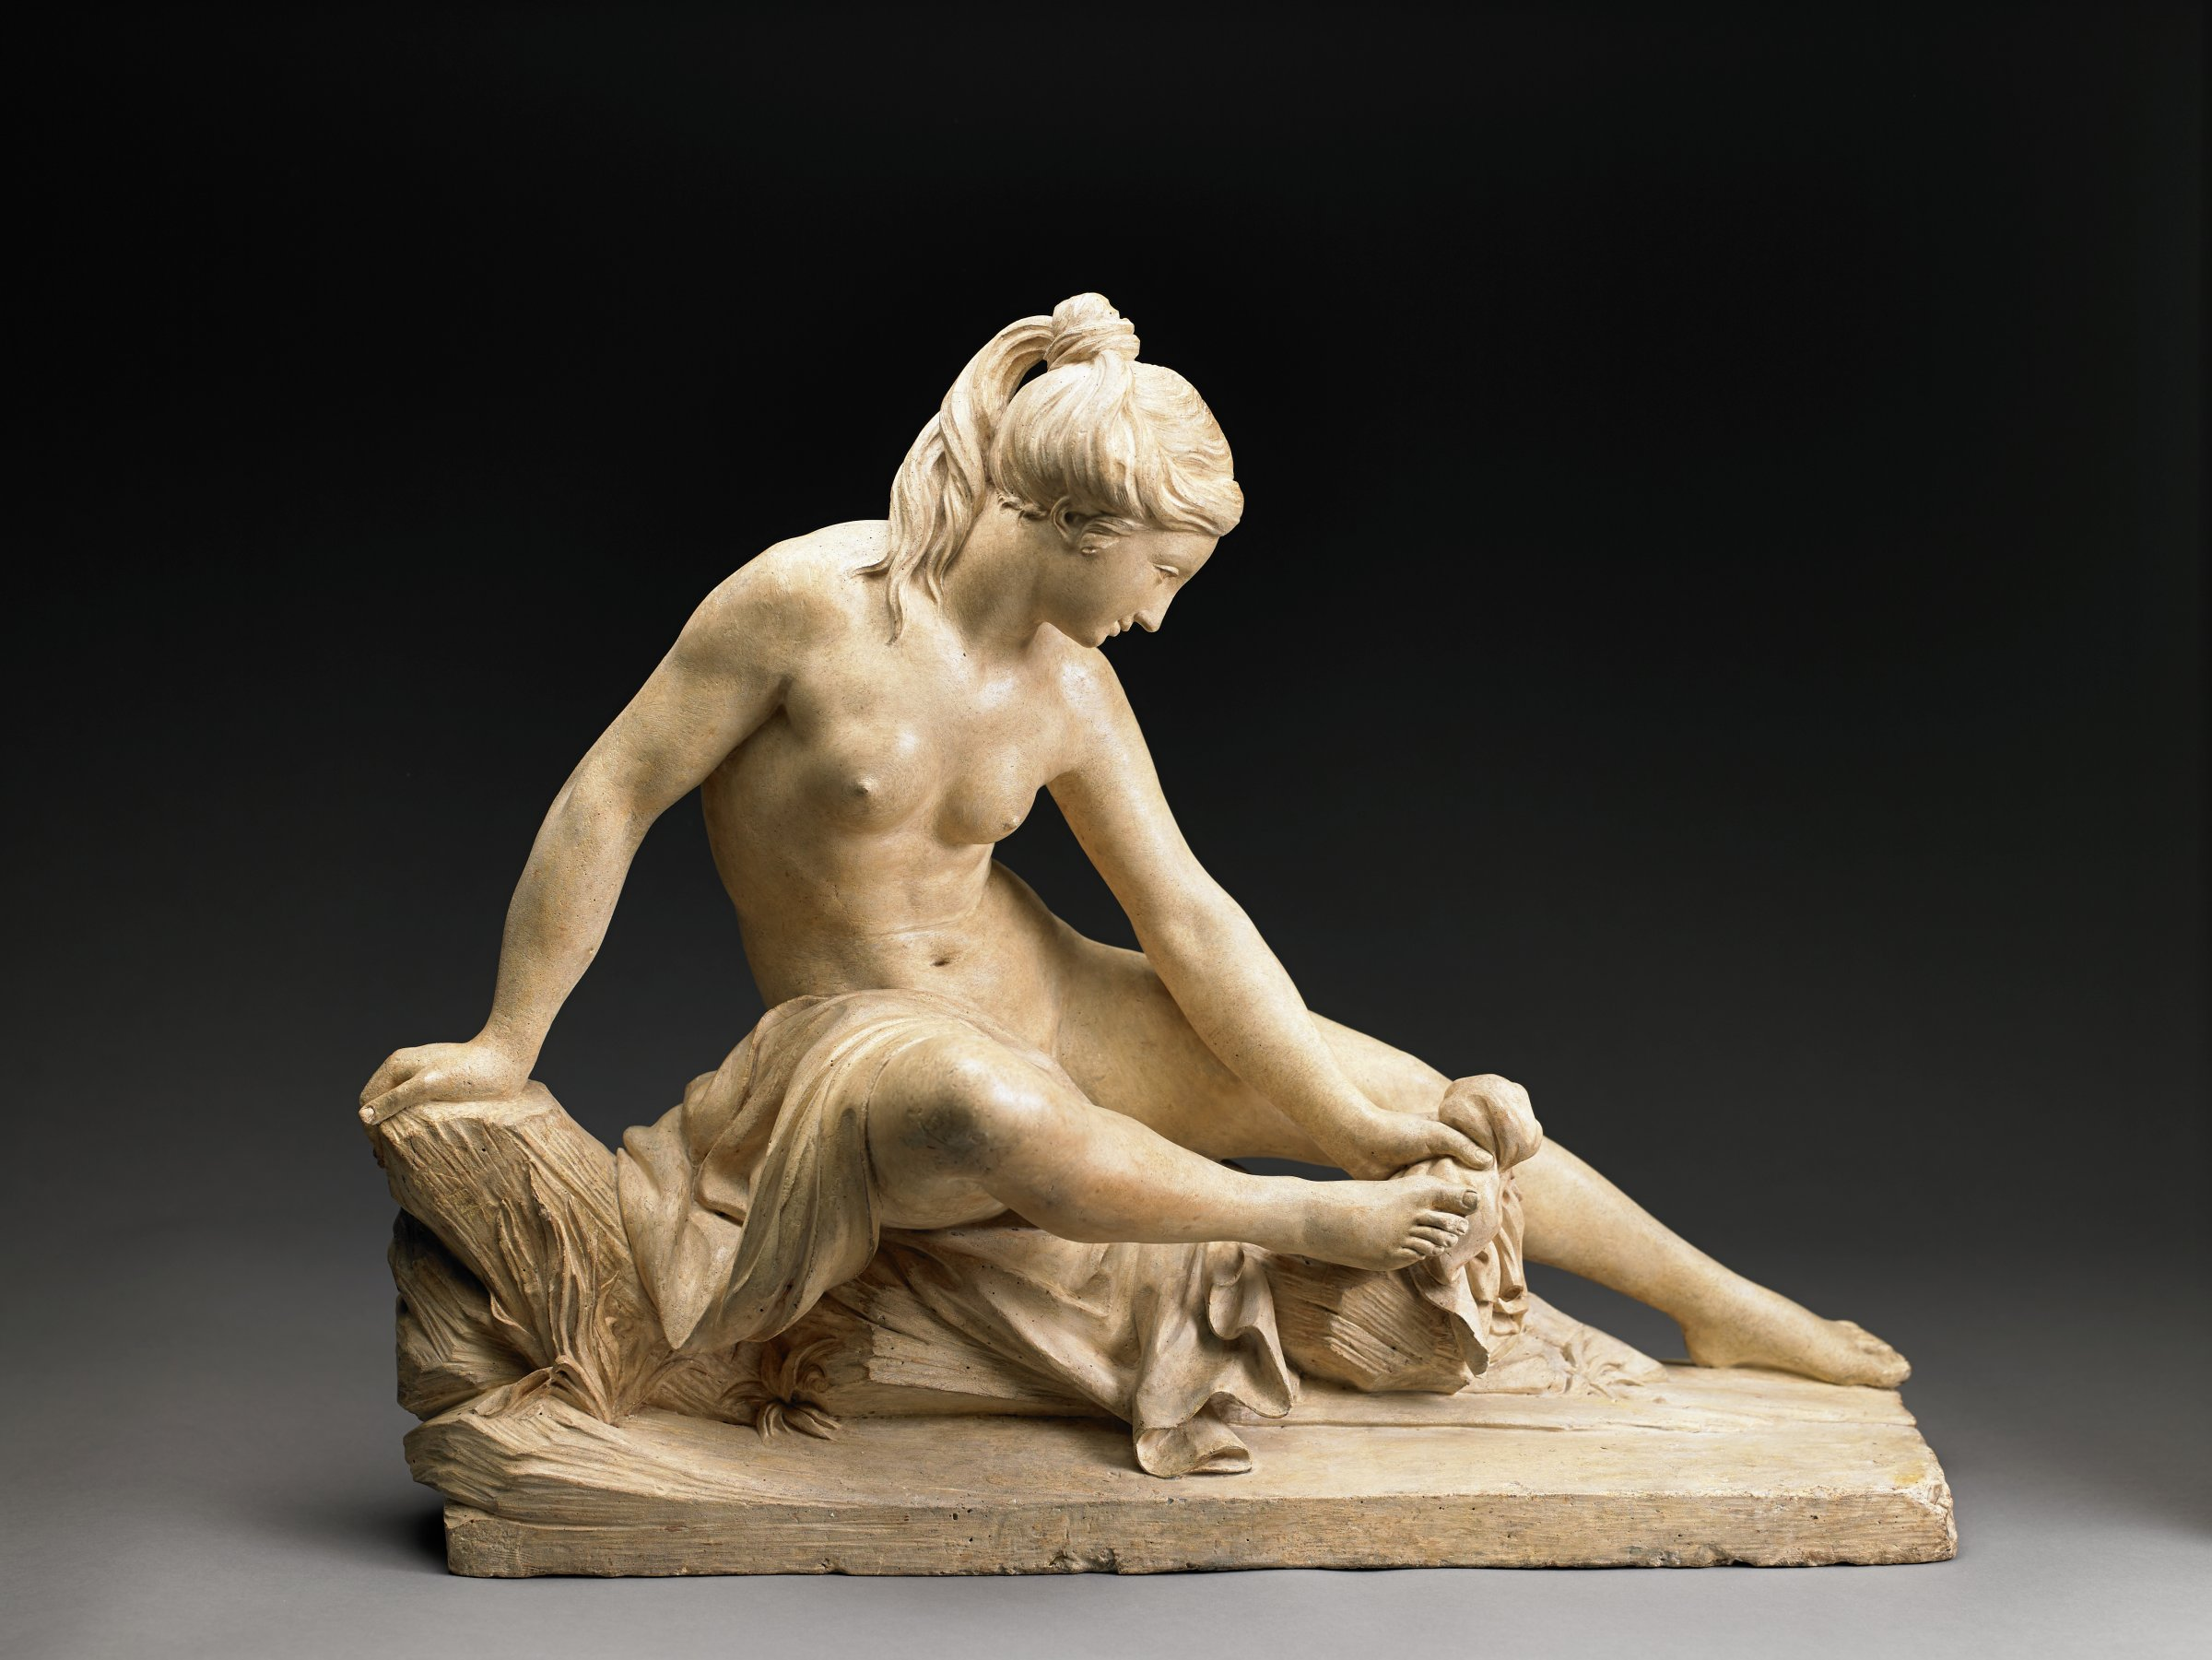 A woman sits leaning on her right arm as she baths with her left hand. Her gaze is cast downwards as she focuses on her movements. Her right leg is bent and slightly lifted. Her hair is pulled up on the crown of her head.